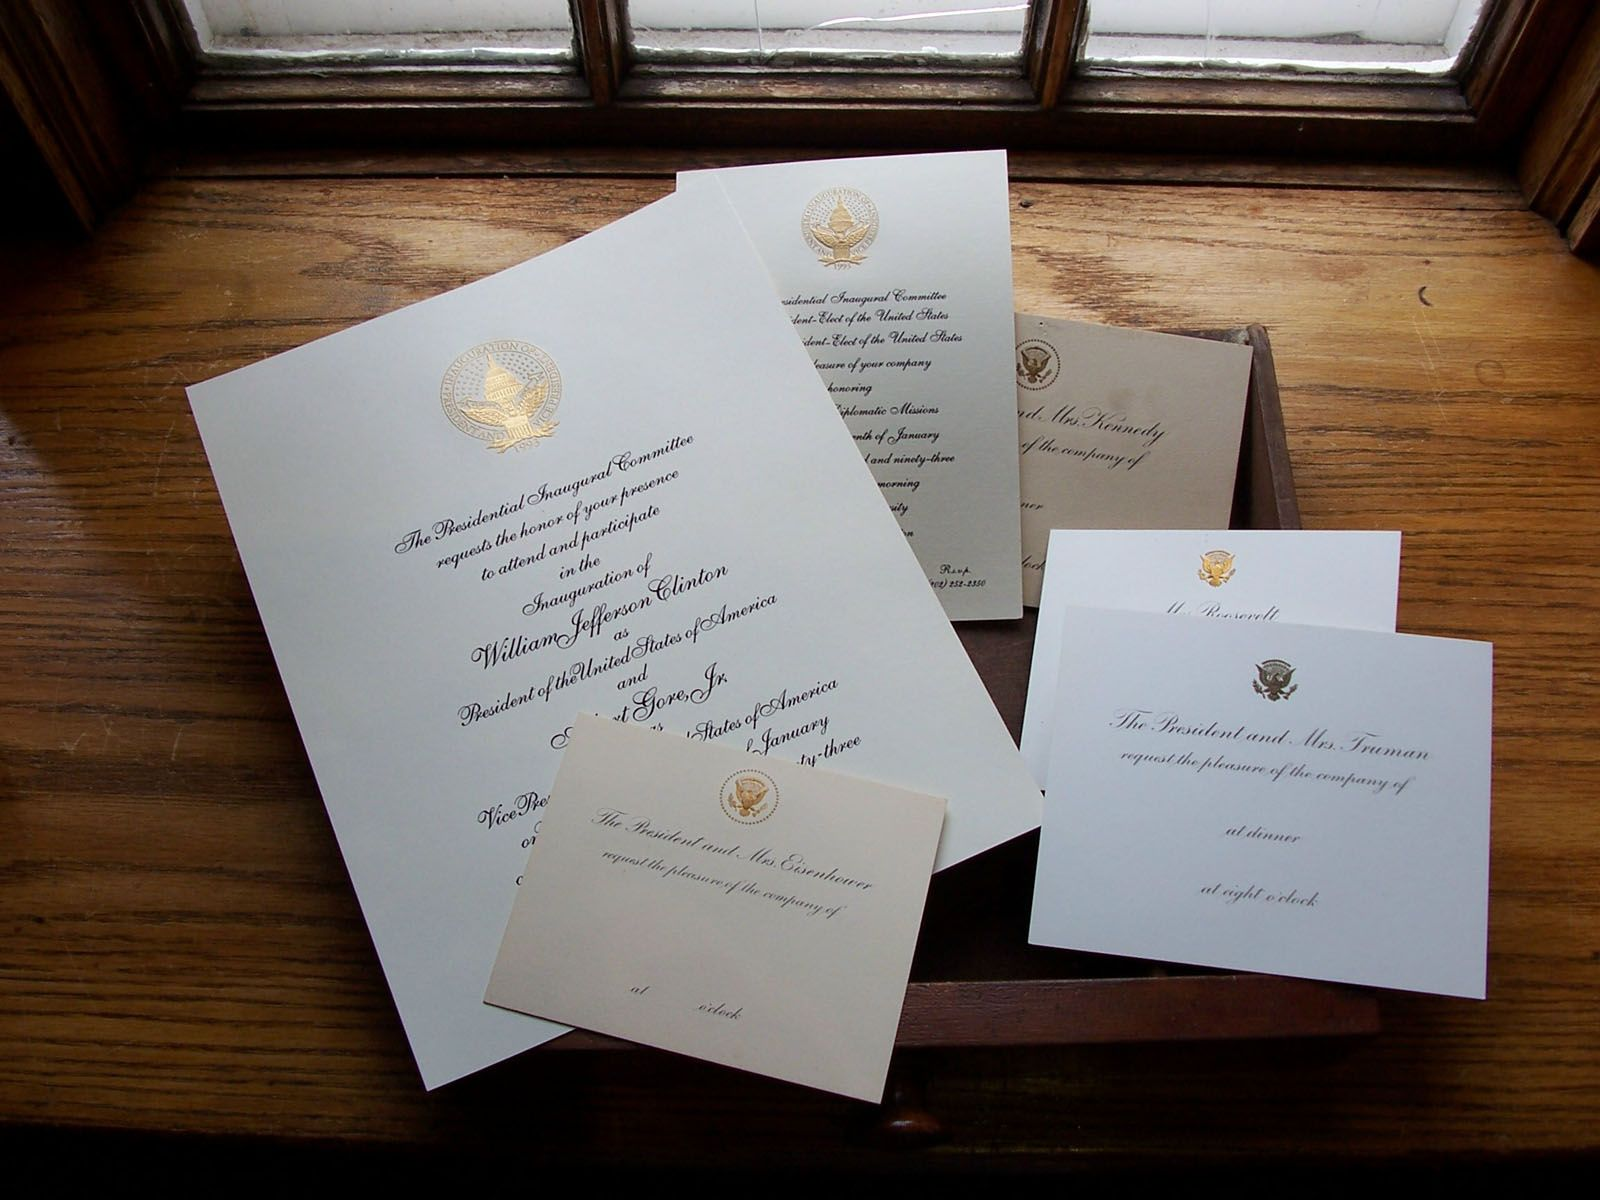 Presidential Stationery Printed On Crane Amp Co Paper If It S Fit For The Past And Present